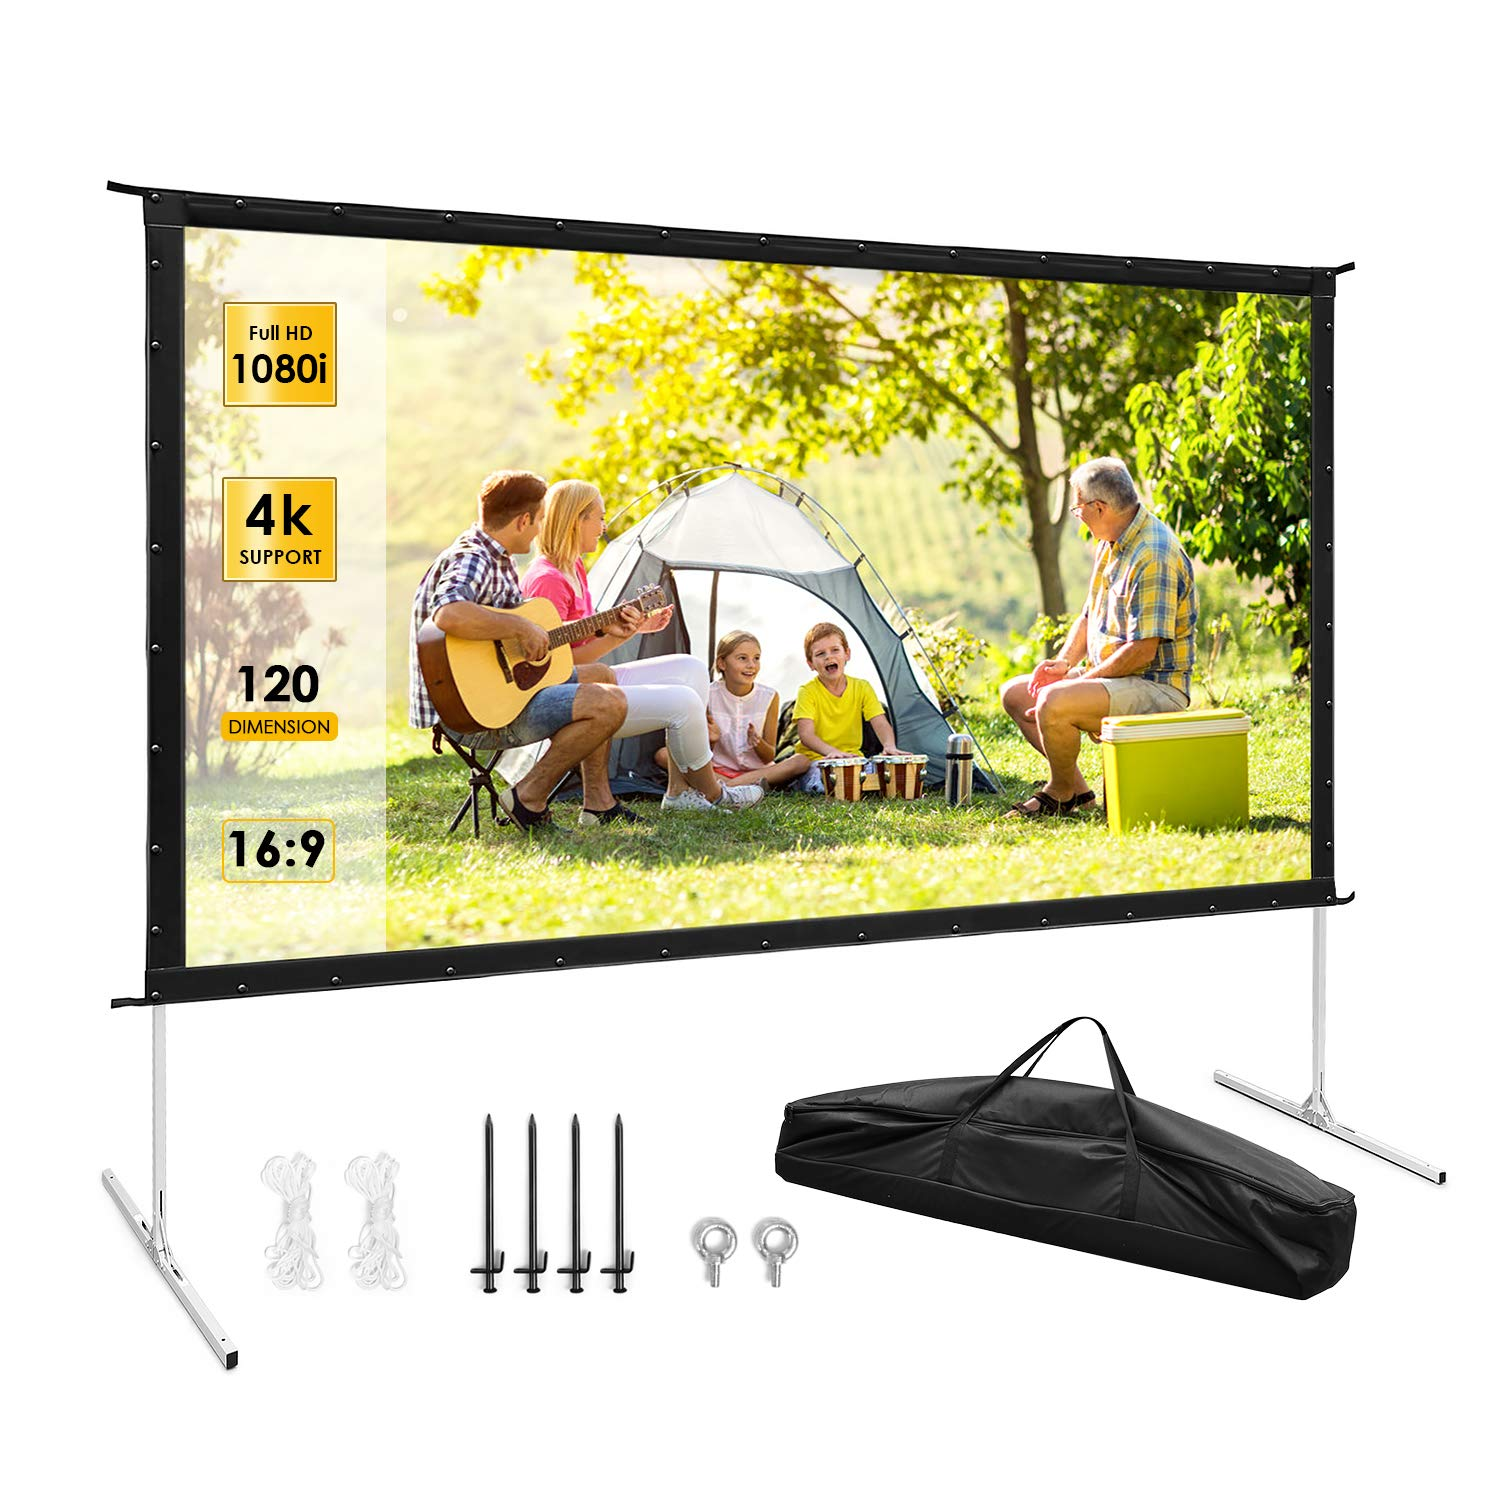 Projector Screen, TUSY Projector Screen 120 inch, 16:9 4K Ultra HD 3D Projector Outdoor Movie with Stand-Folding Wall-Mounted Outdoor Screen for Home Theater Movies